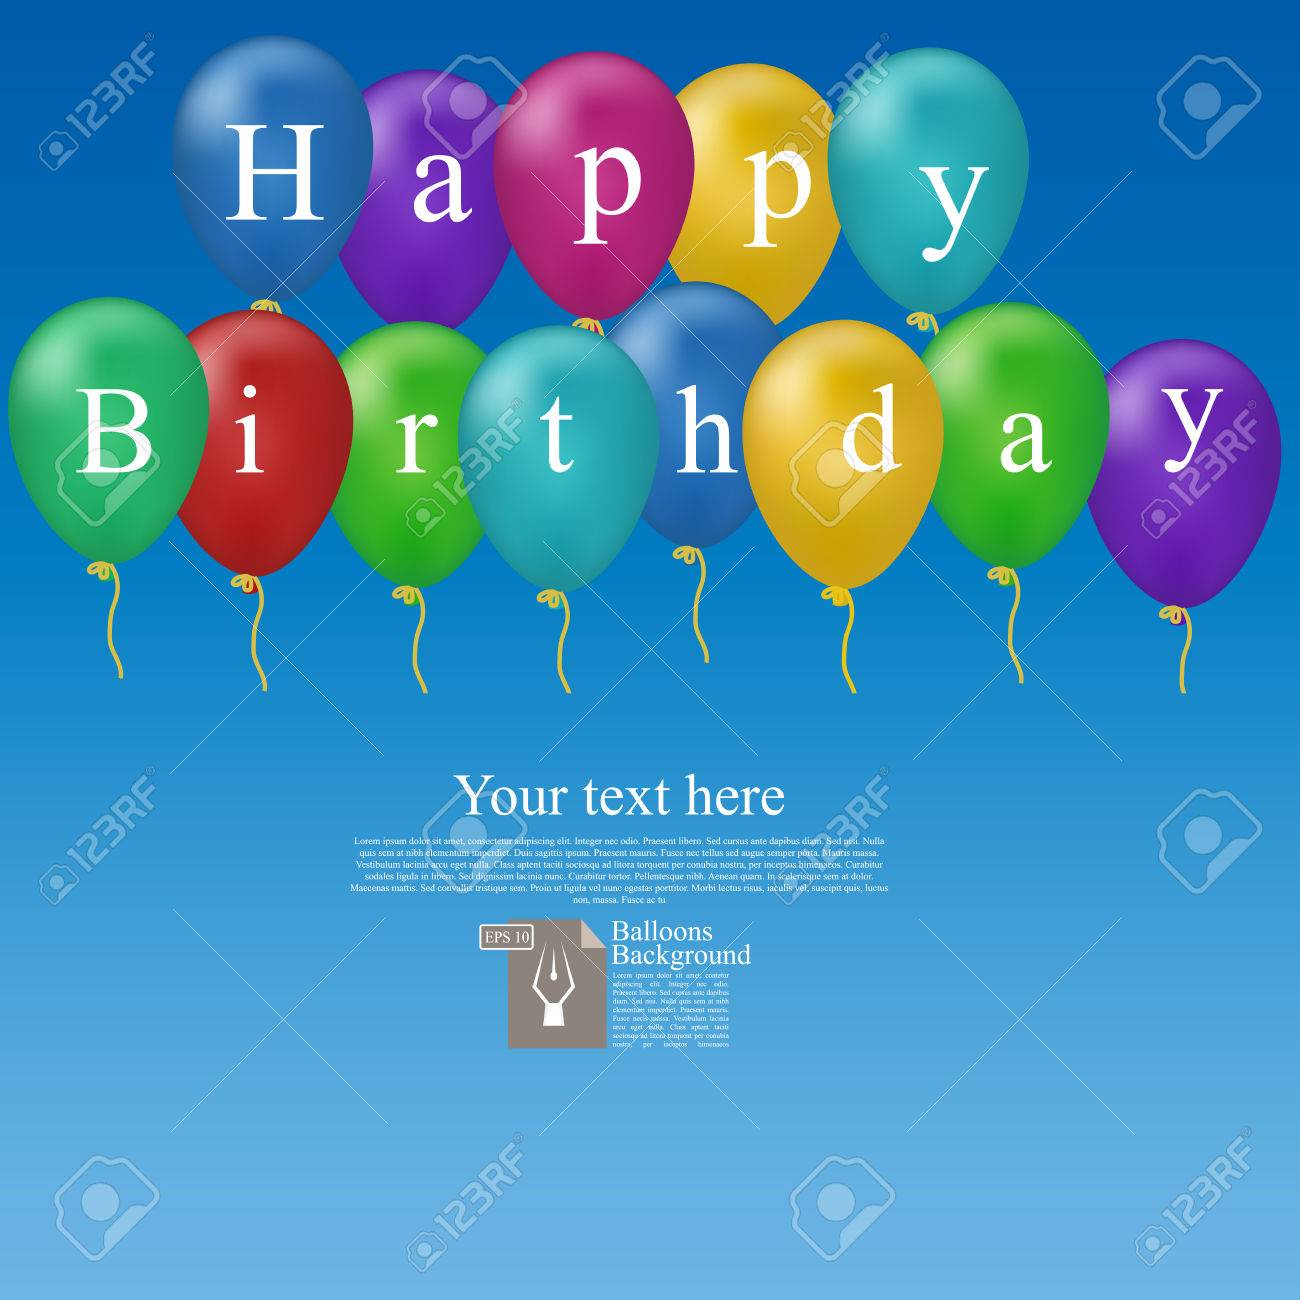 high quality birthday images ; 69438807-high-quality-original-trendy-vector-color-happy-birthday-balloons-with-place-for-text-can-be-used-fo